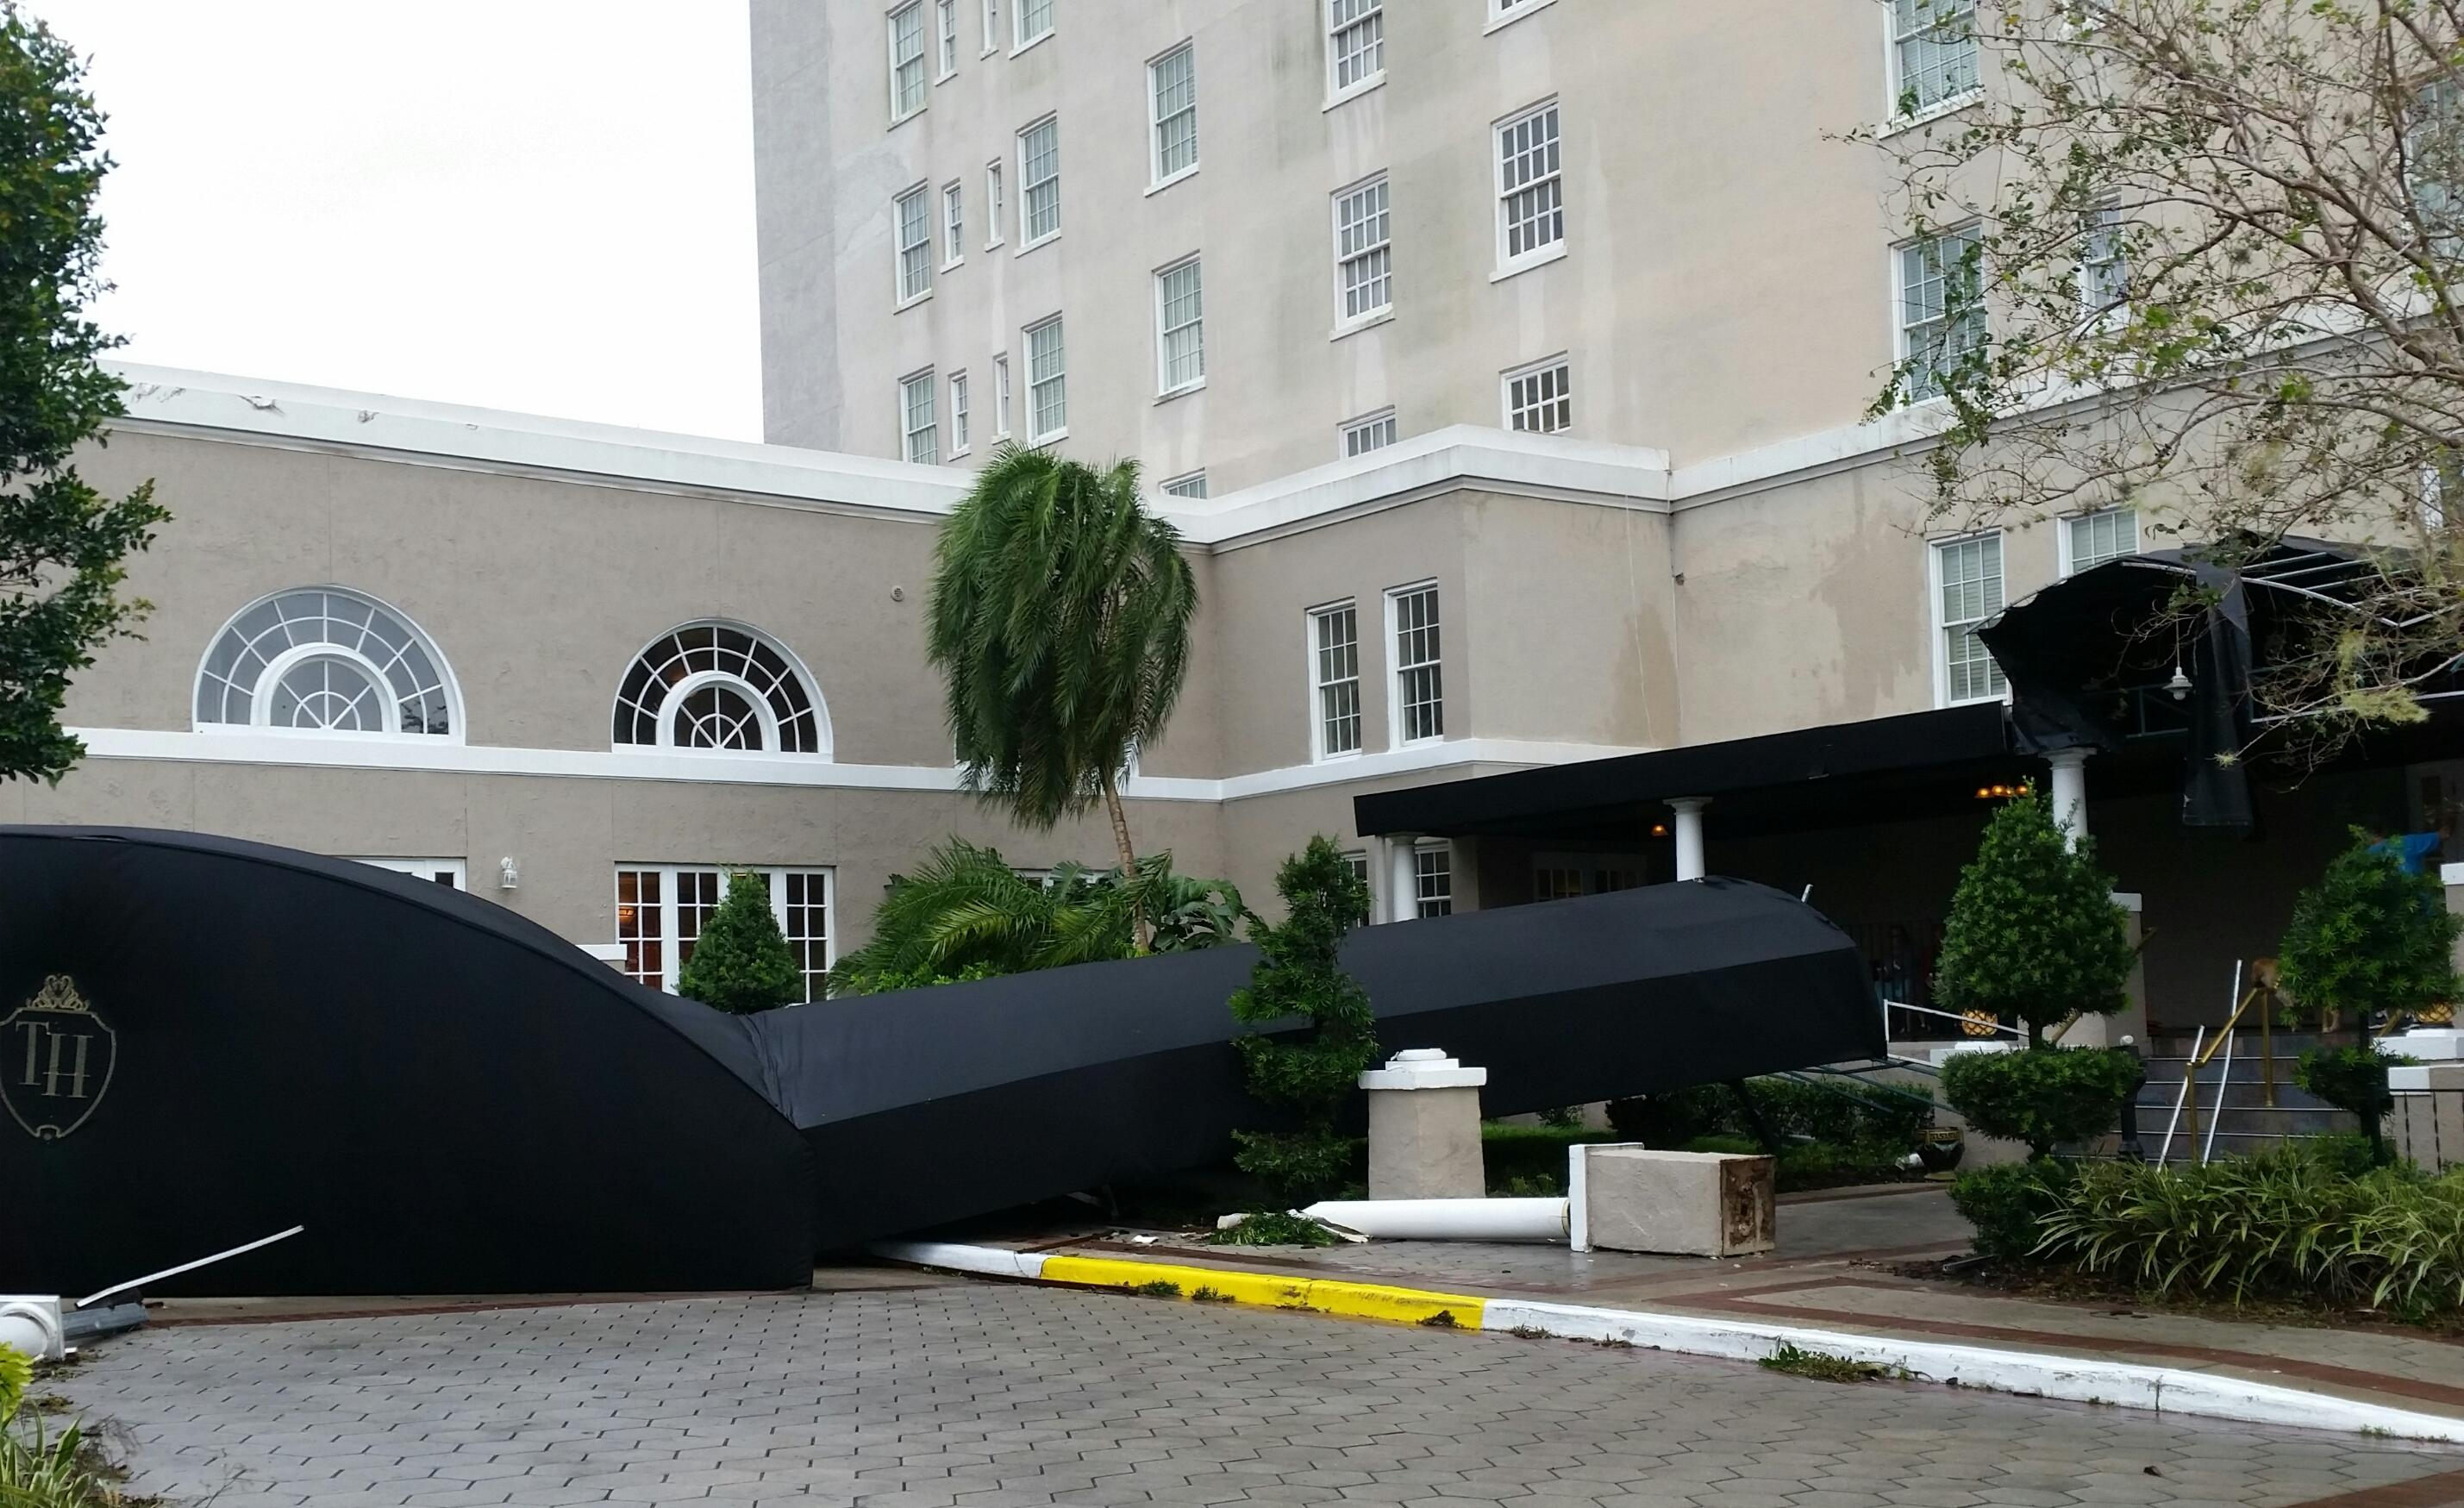 Broken hotel canopy due to storm damage